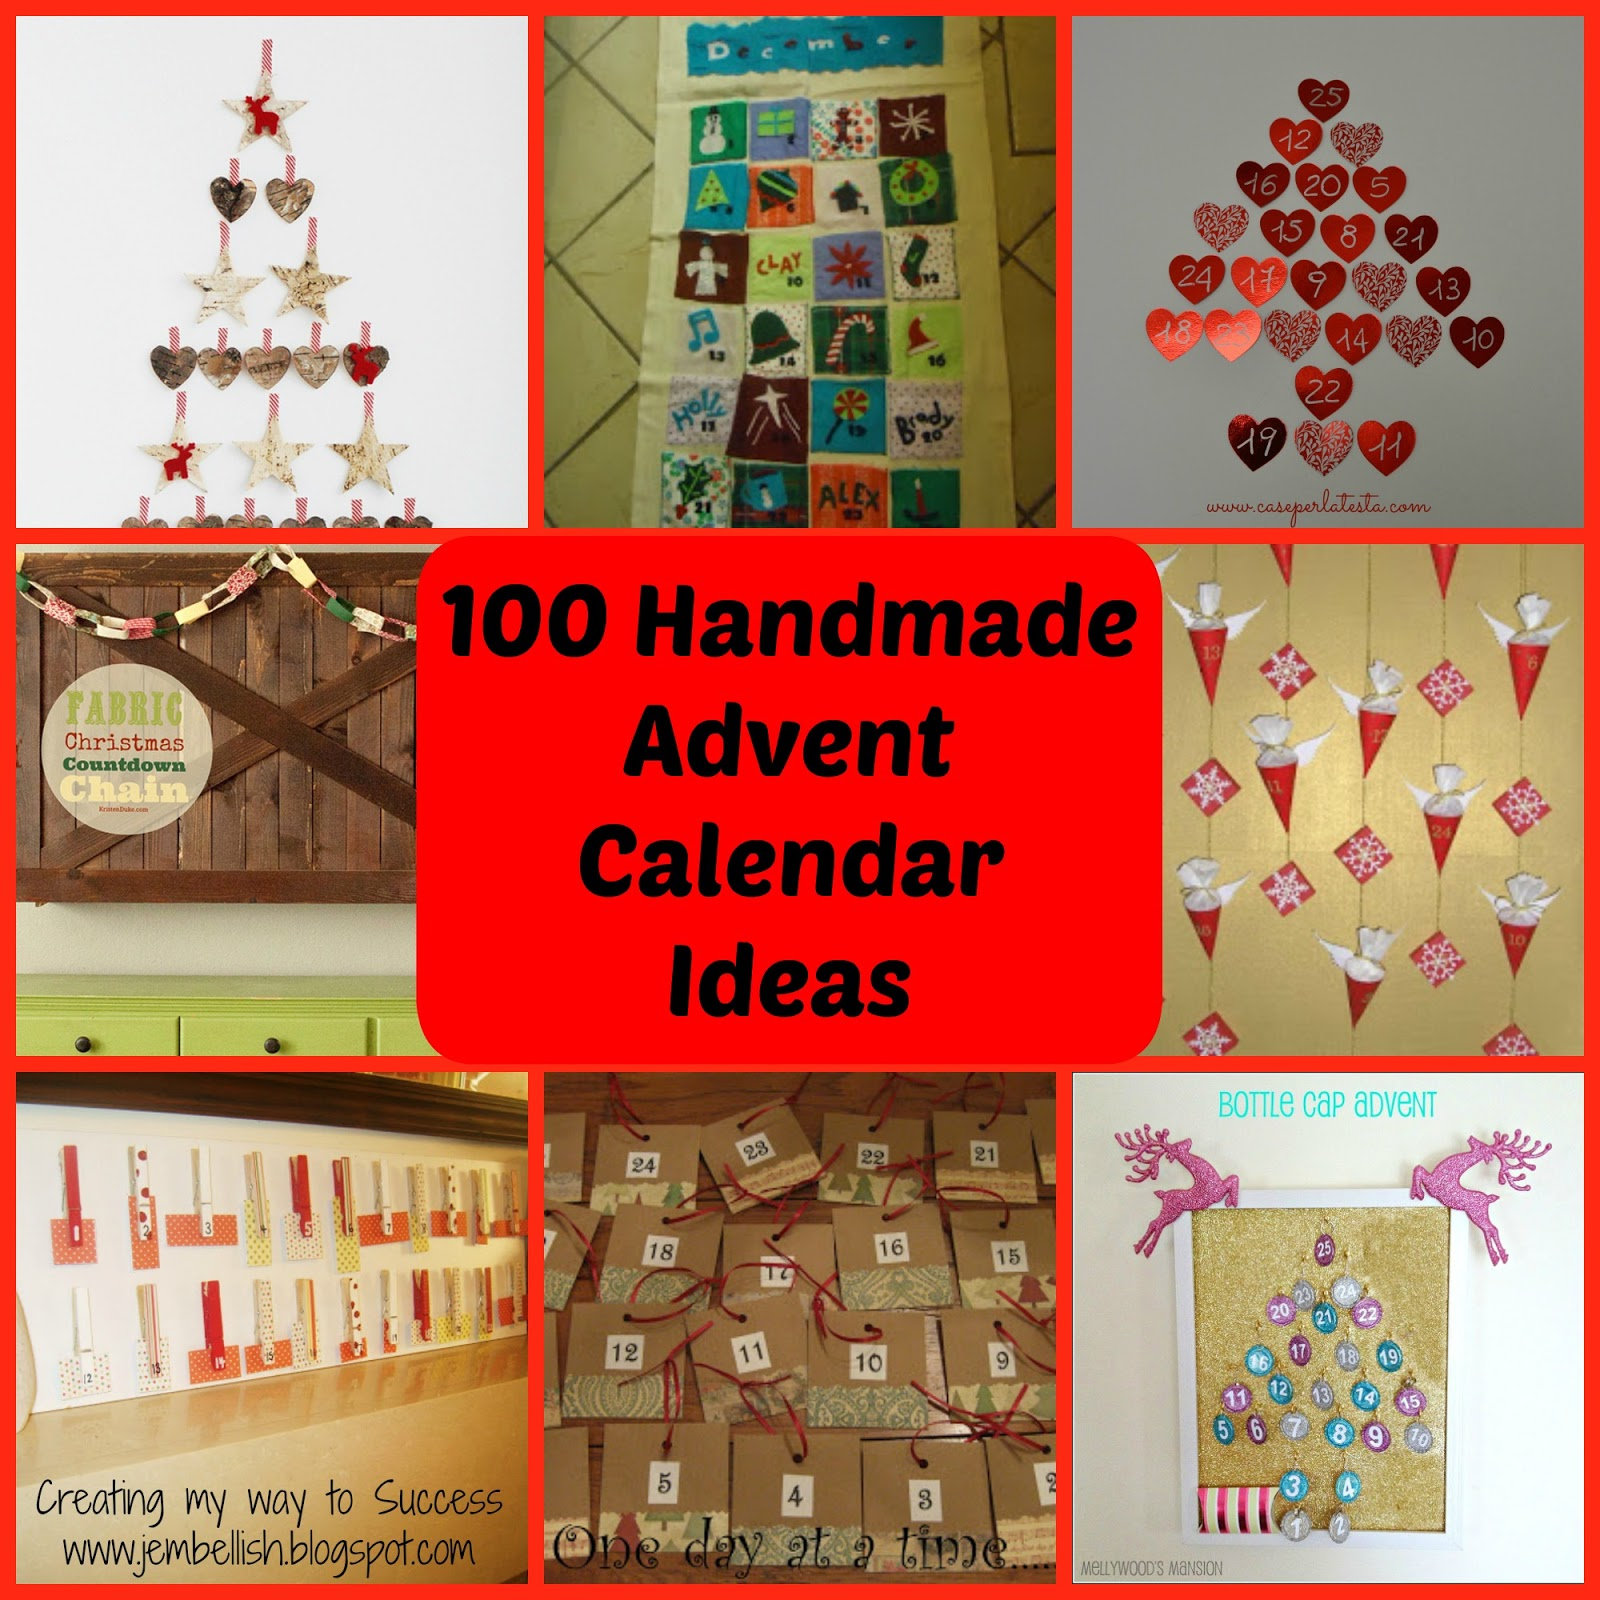 Advent Calendar Handmade : Creating my way to success ideas for handmade advent